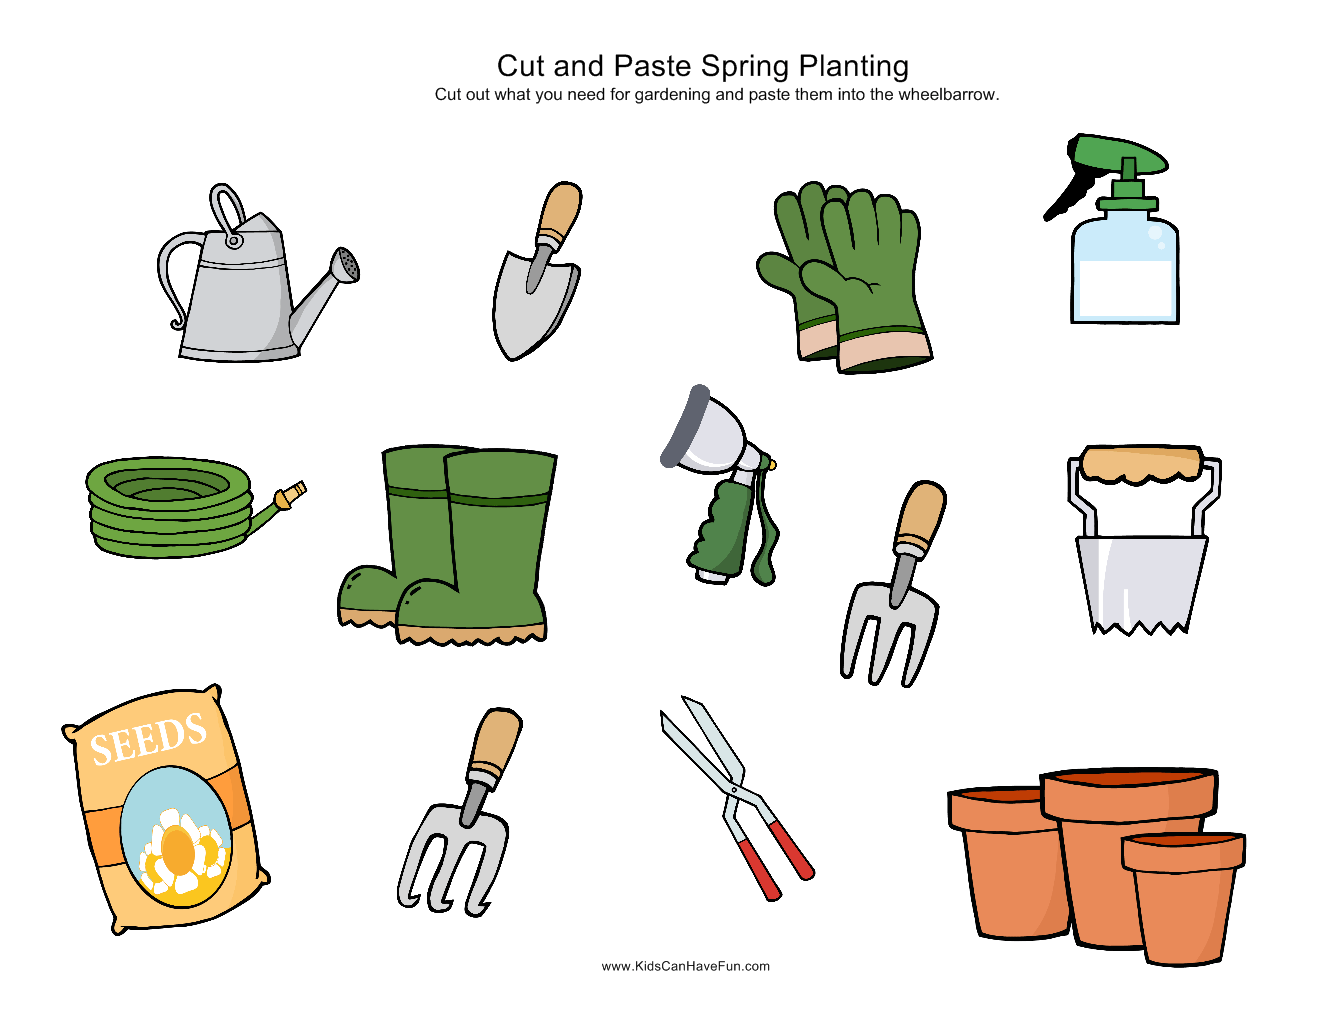 Cut And Paste Spring Gardening Page0 1 319 1 019 Pixels